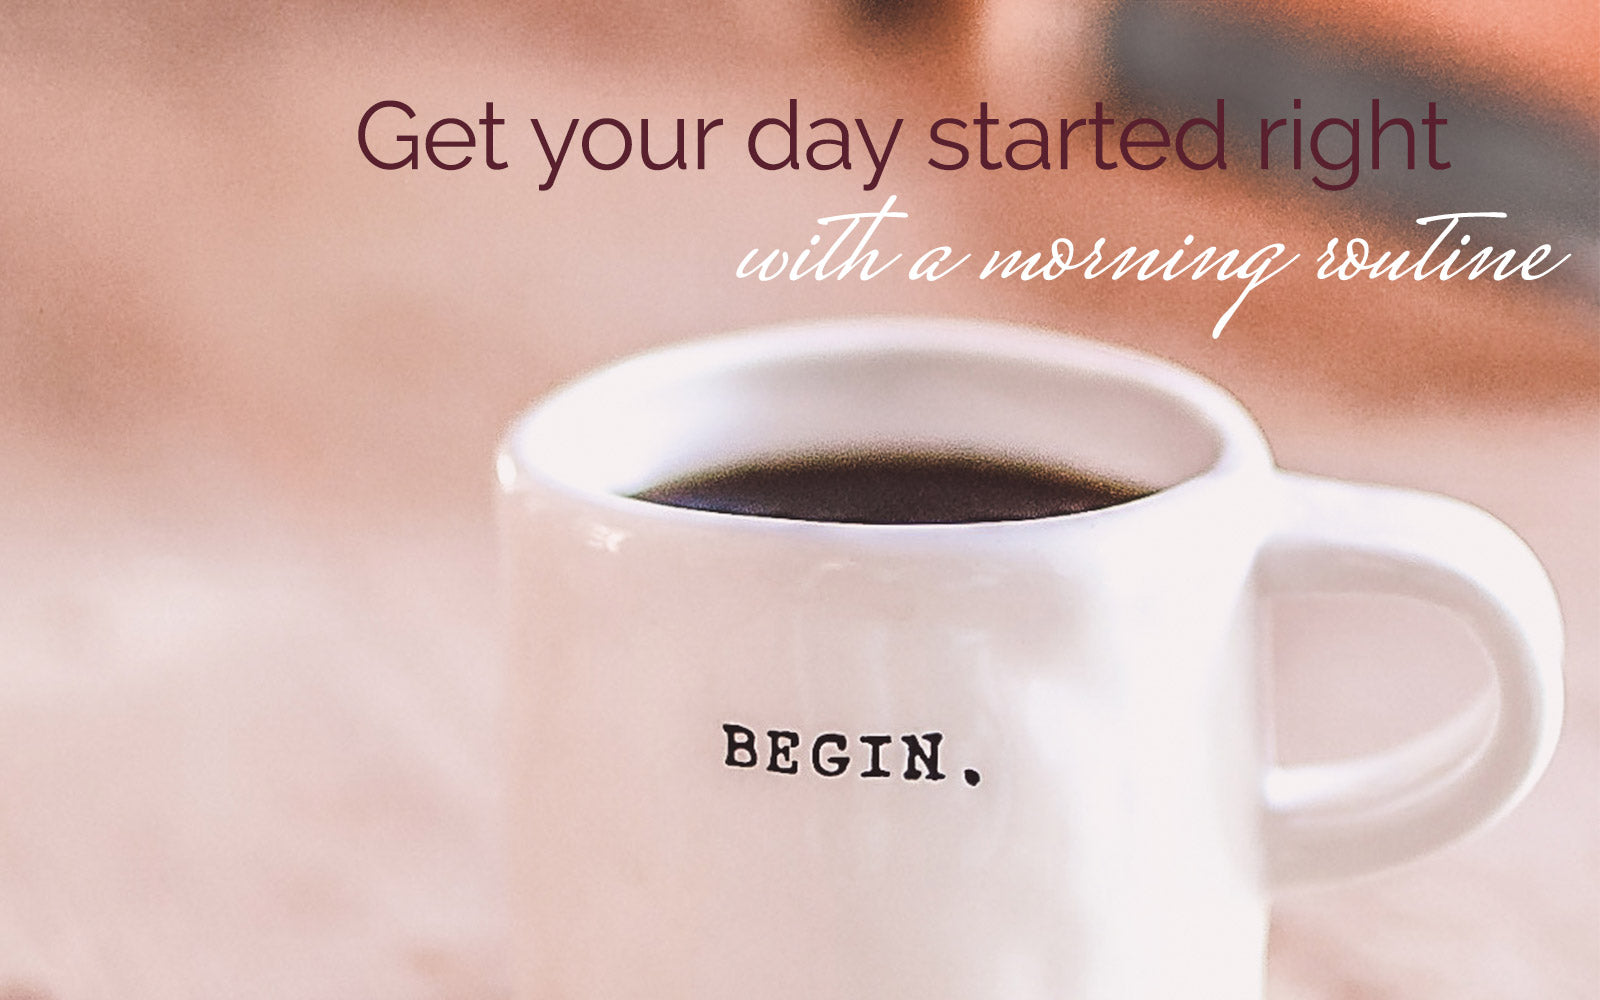 Begin. Morning routine ideas